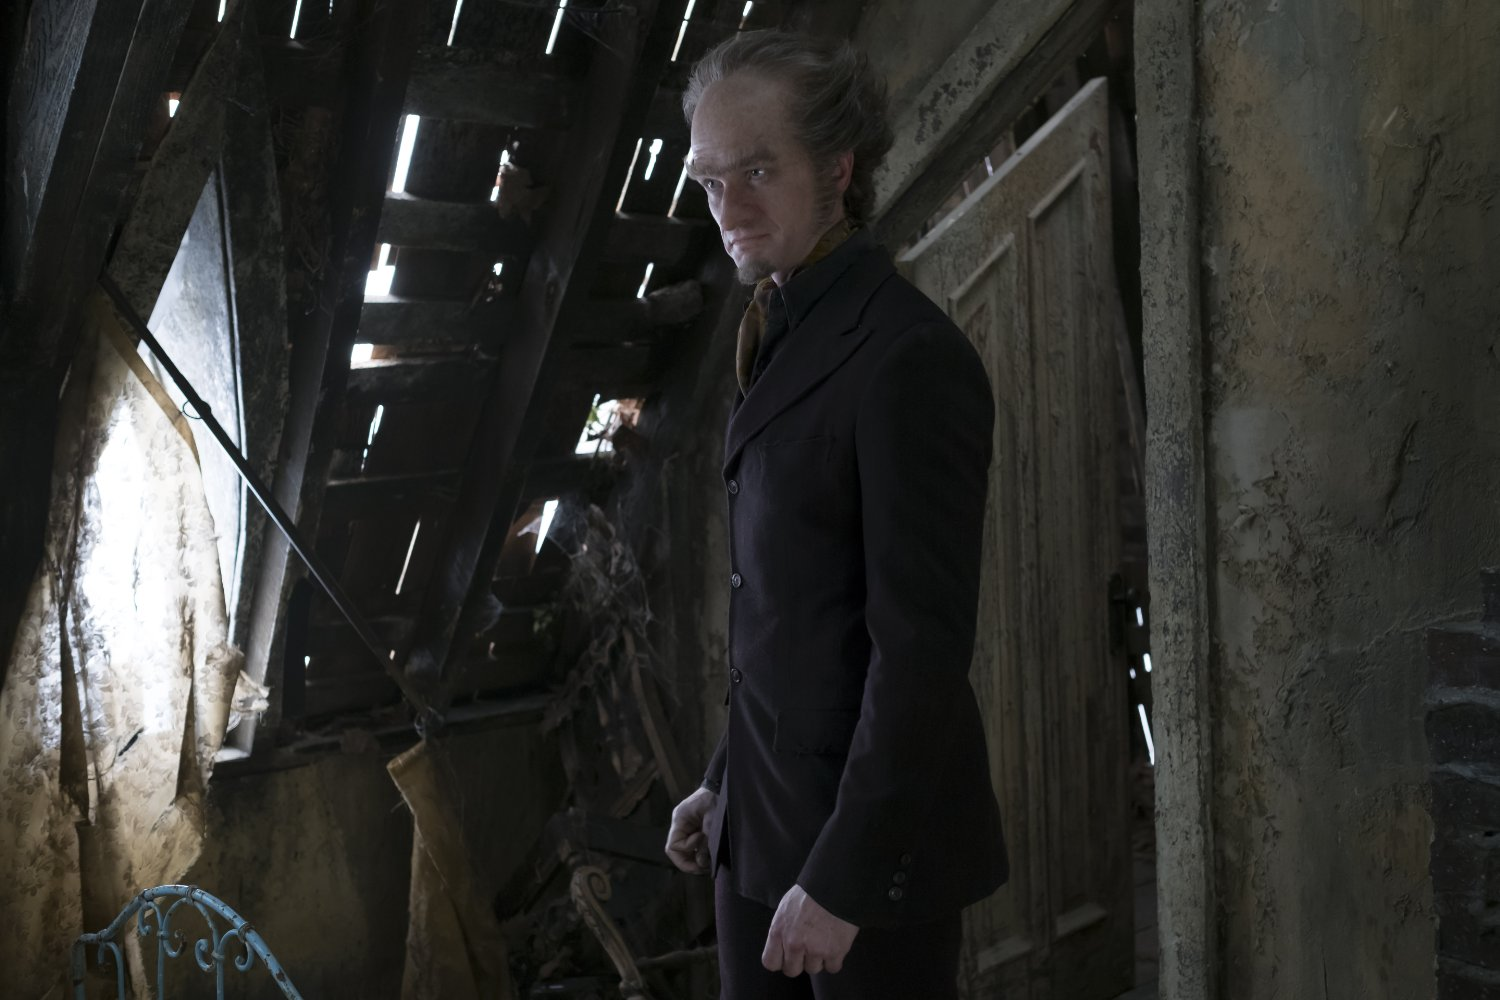 Count Olaf